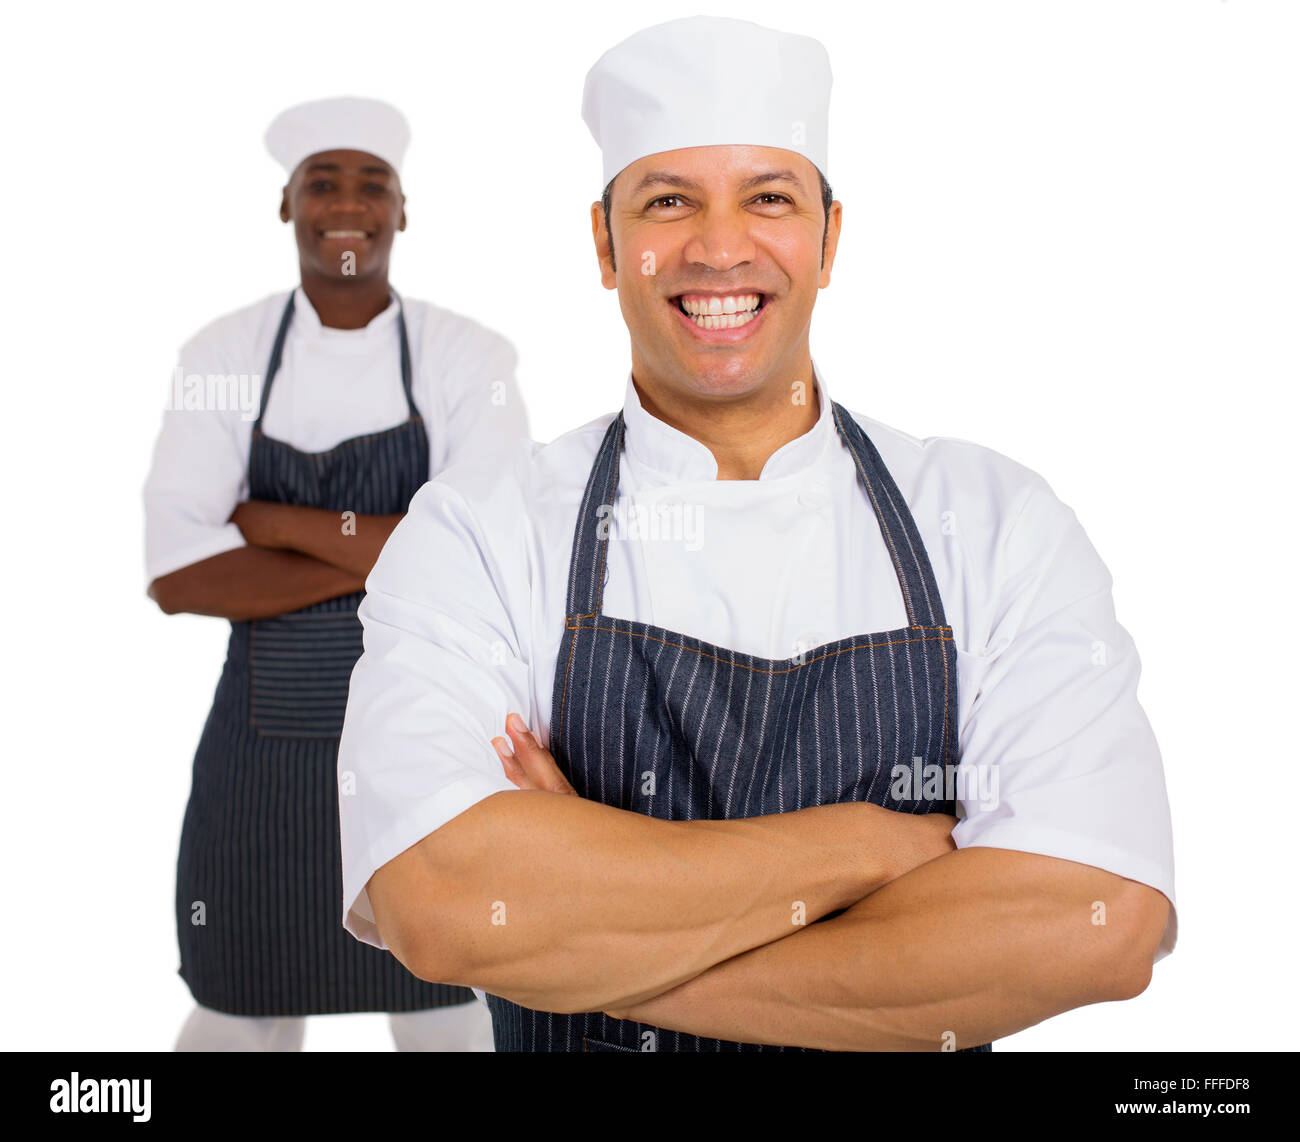 portrait of mid age chef with co-worker on background - Stock Image